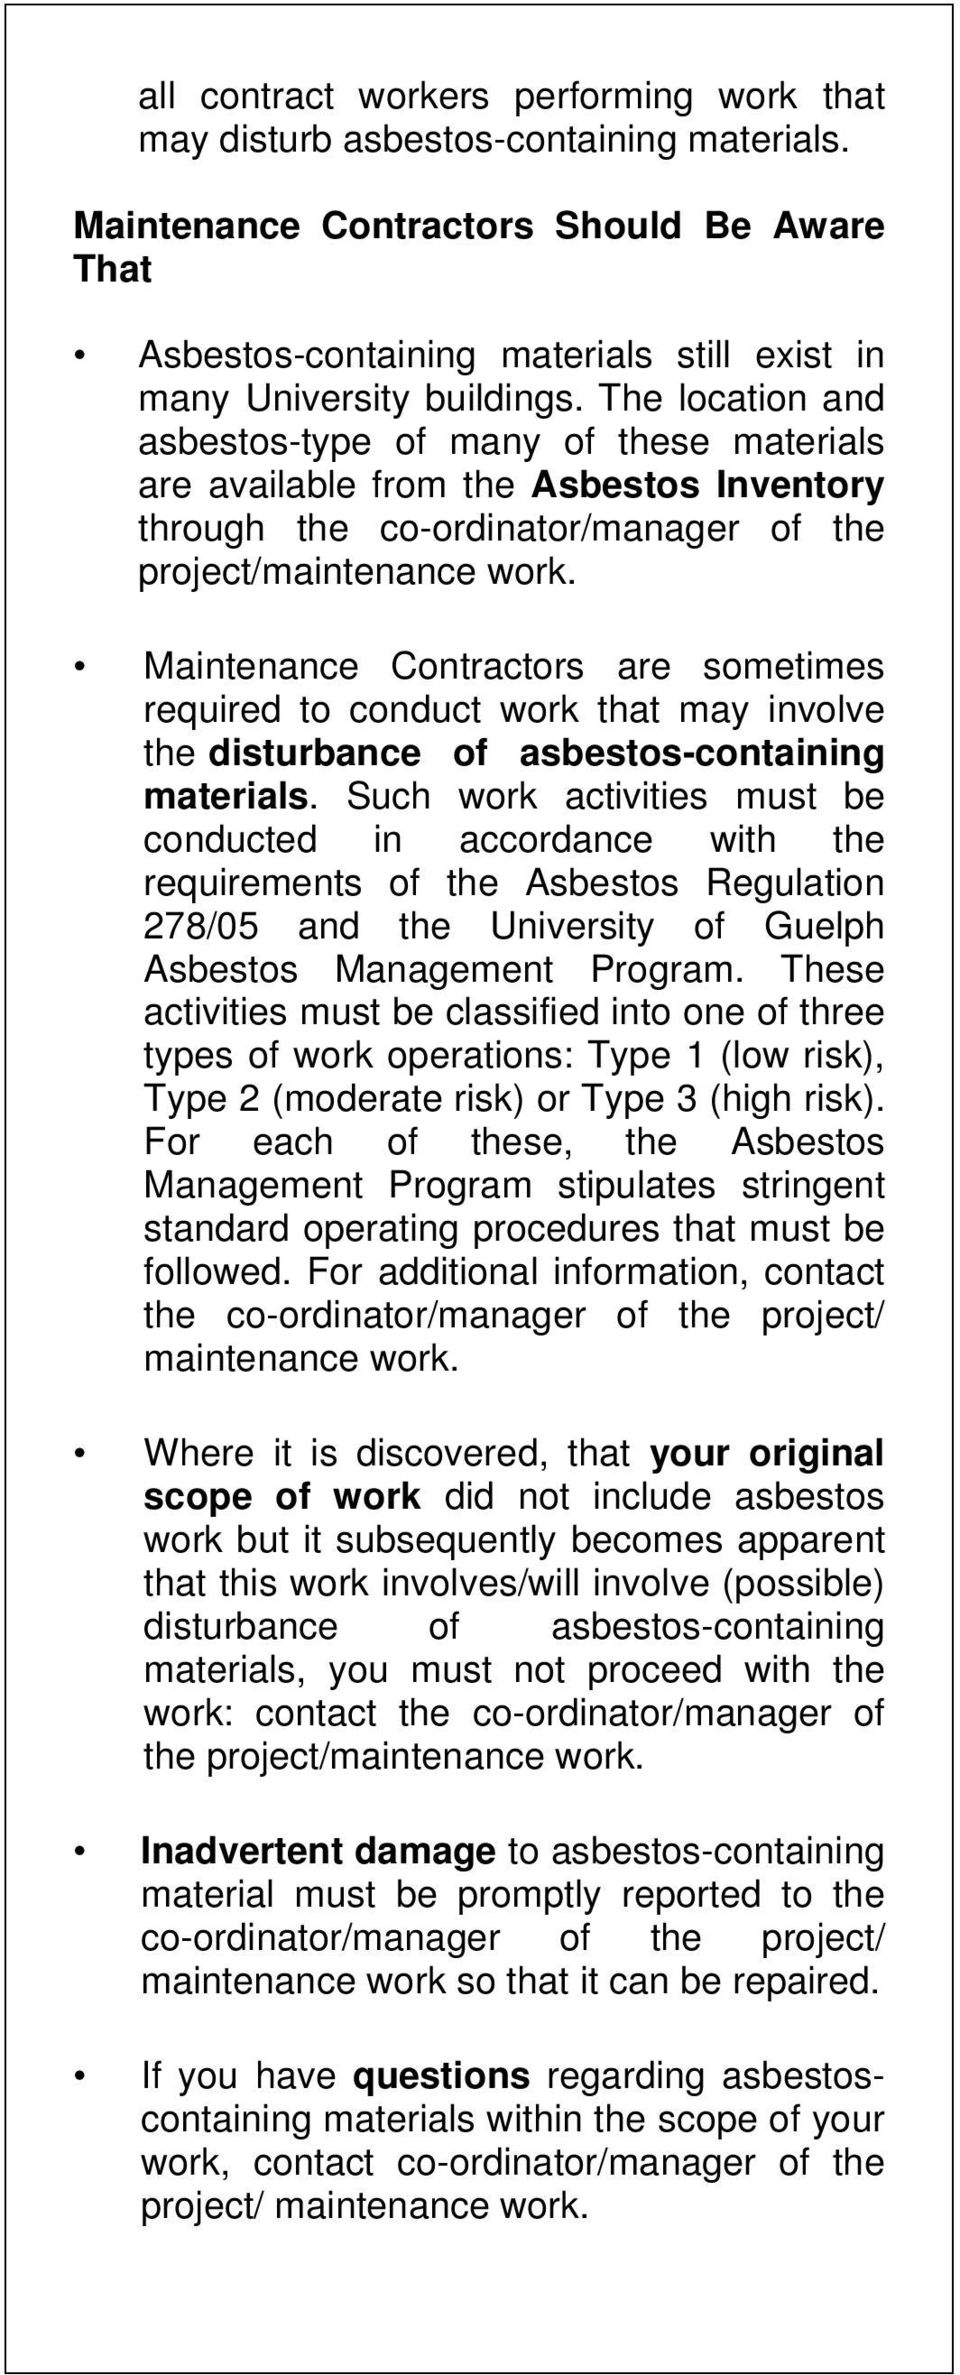 The location and asbestos-type of many of these materials are available from the Asbestos Inventory through the co-ordinator/manager of the project/maintenance work.